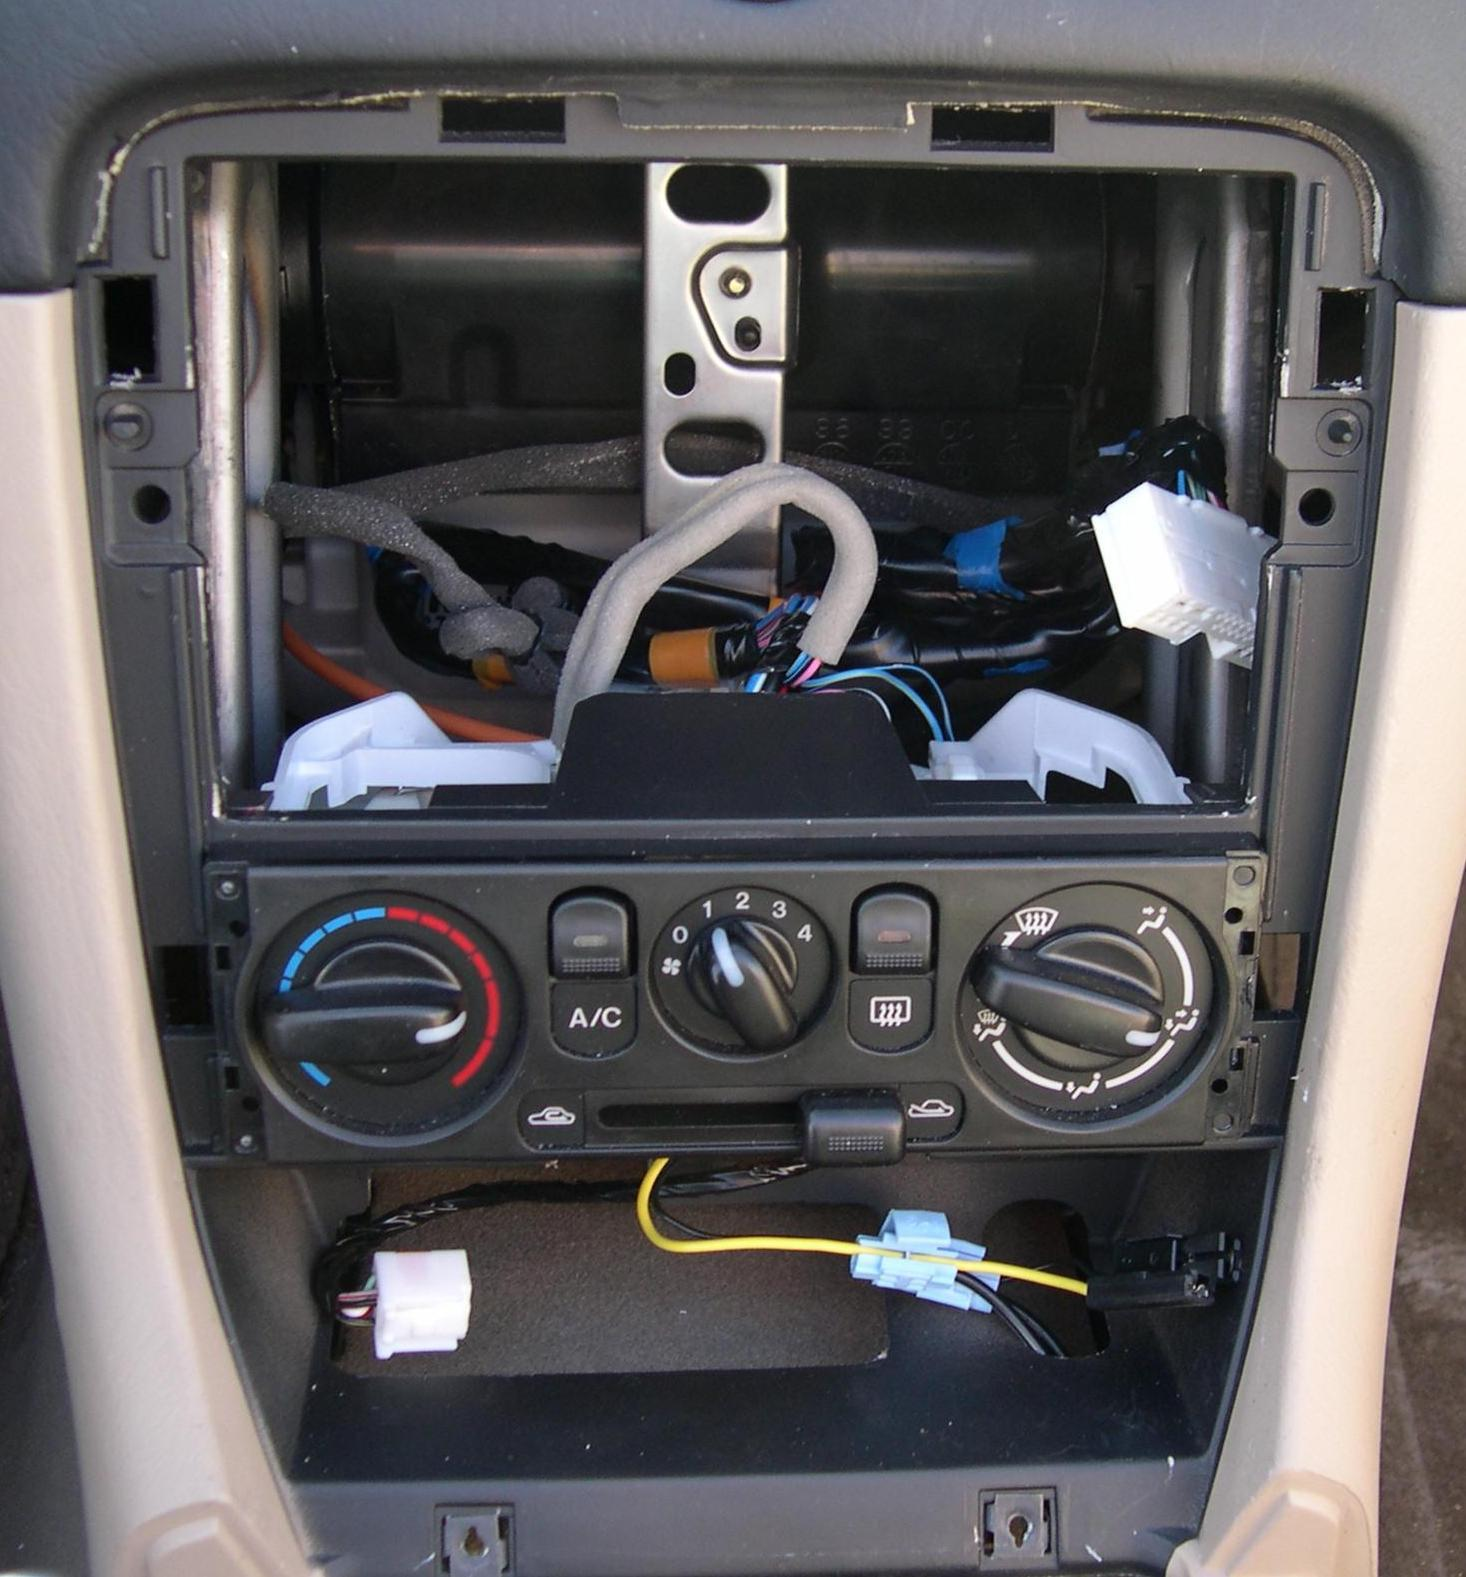 2001 Radio Out the mazda nb oem audio system faq 99 maxima audio wiring diagram at panicattacktreatment.co